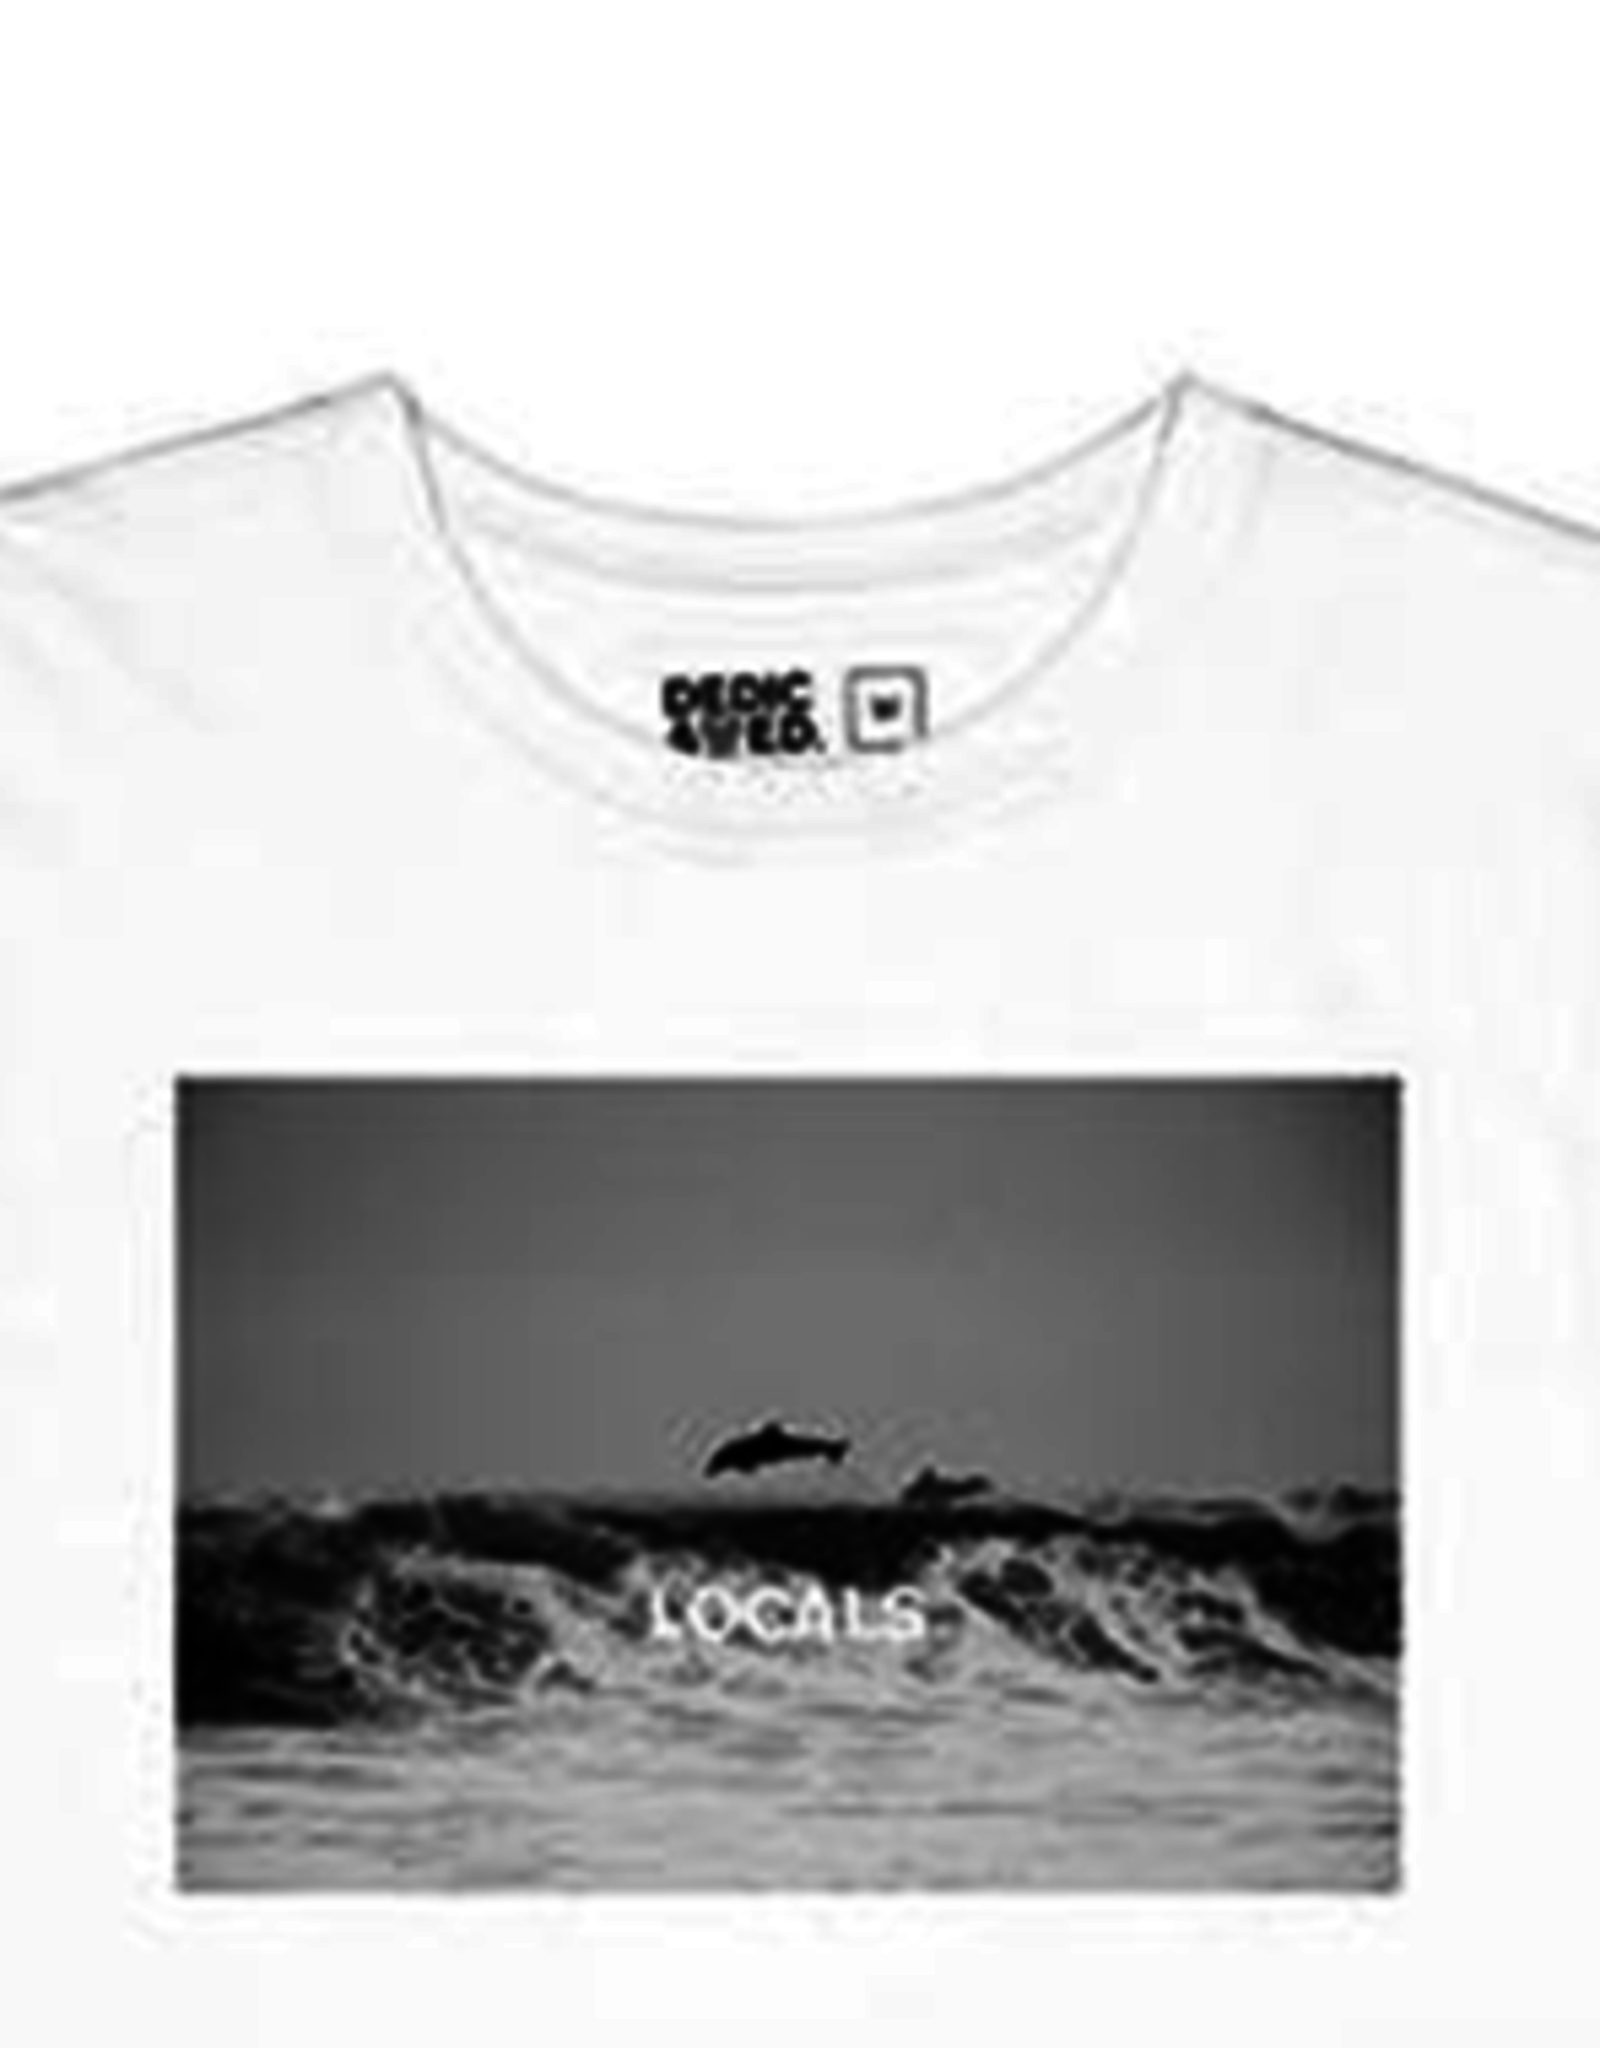 Dedicated T-SHIRT OCEAN LOCALS STOCKHOLM